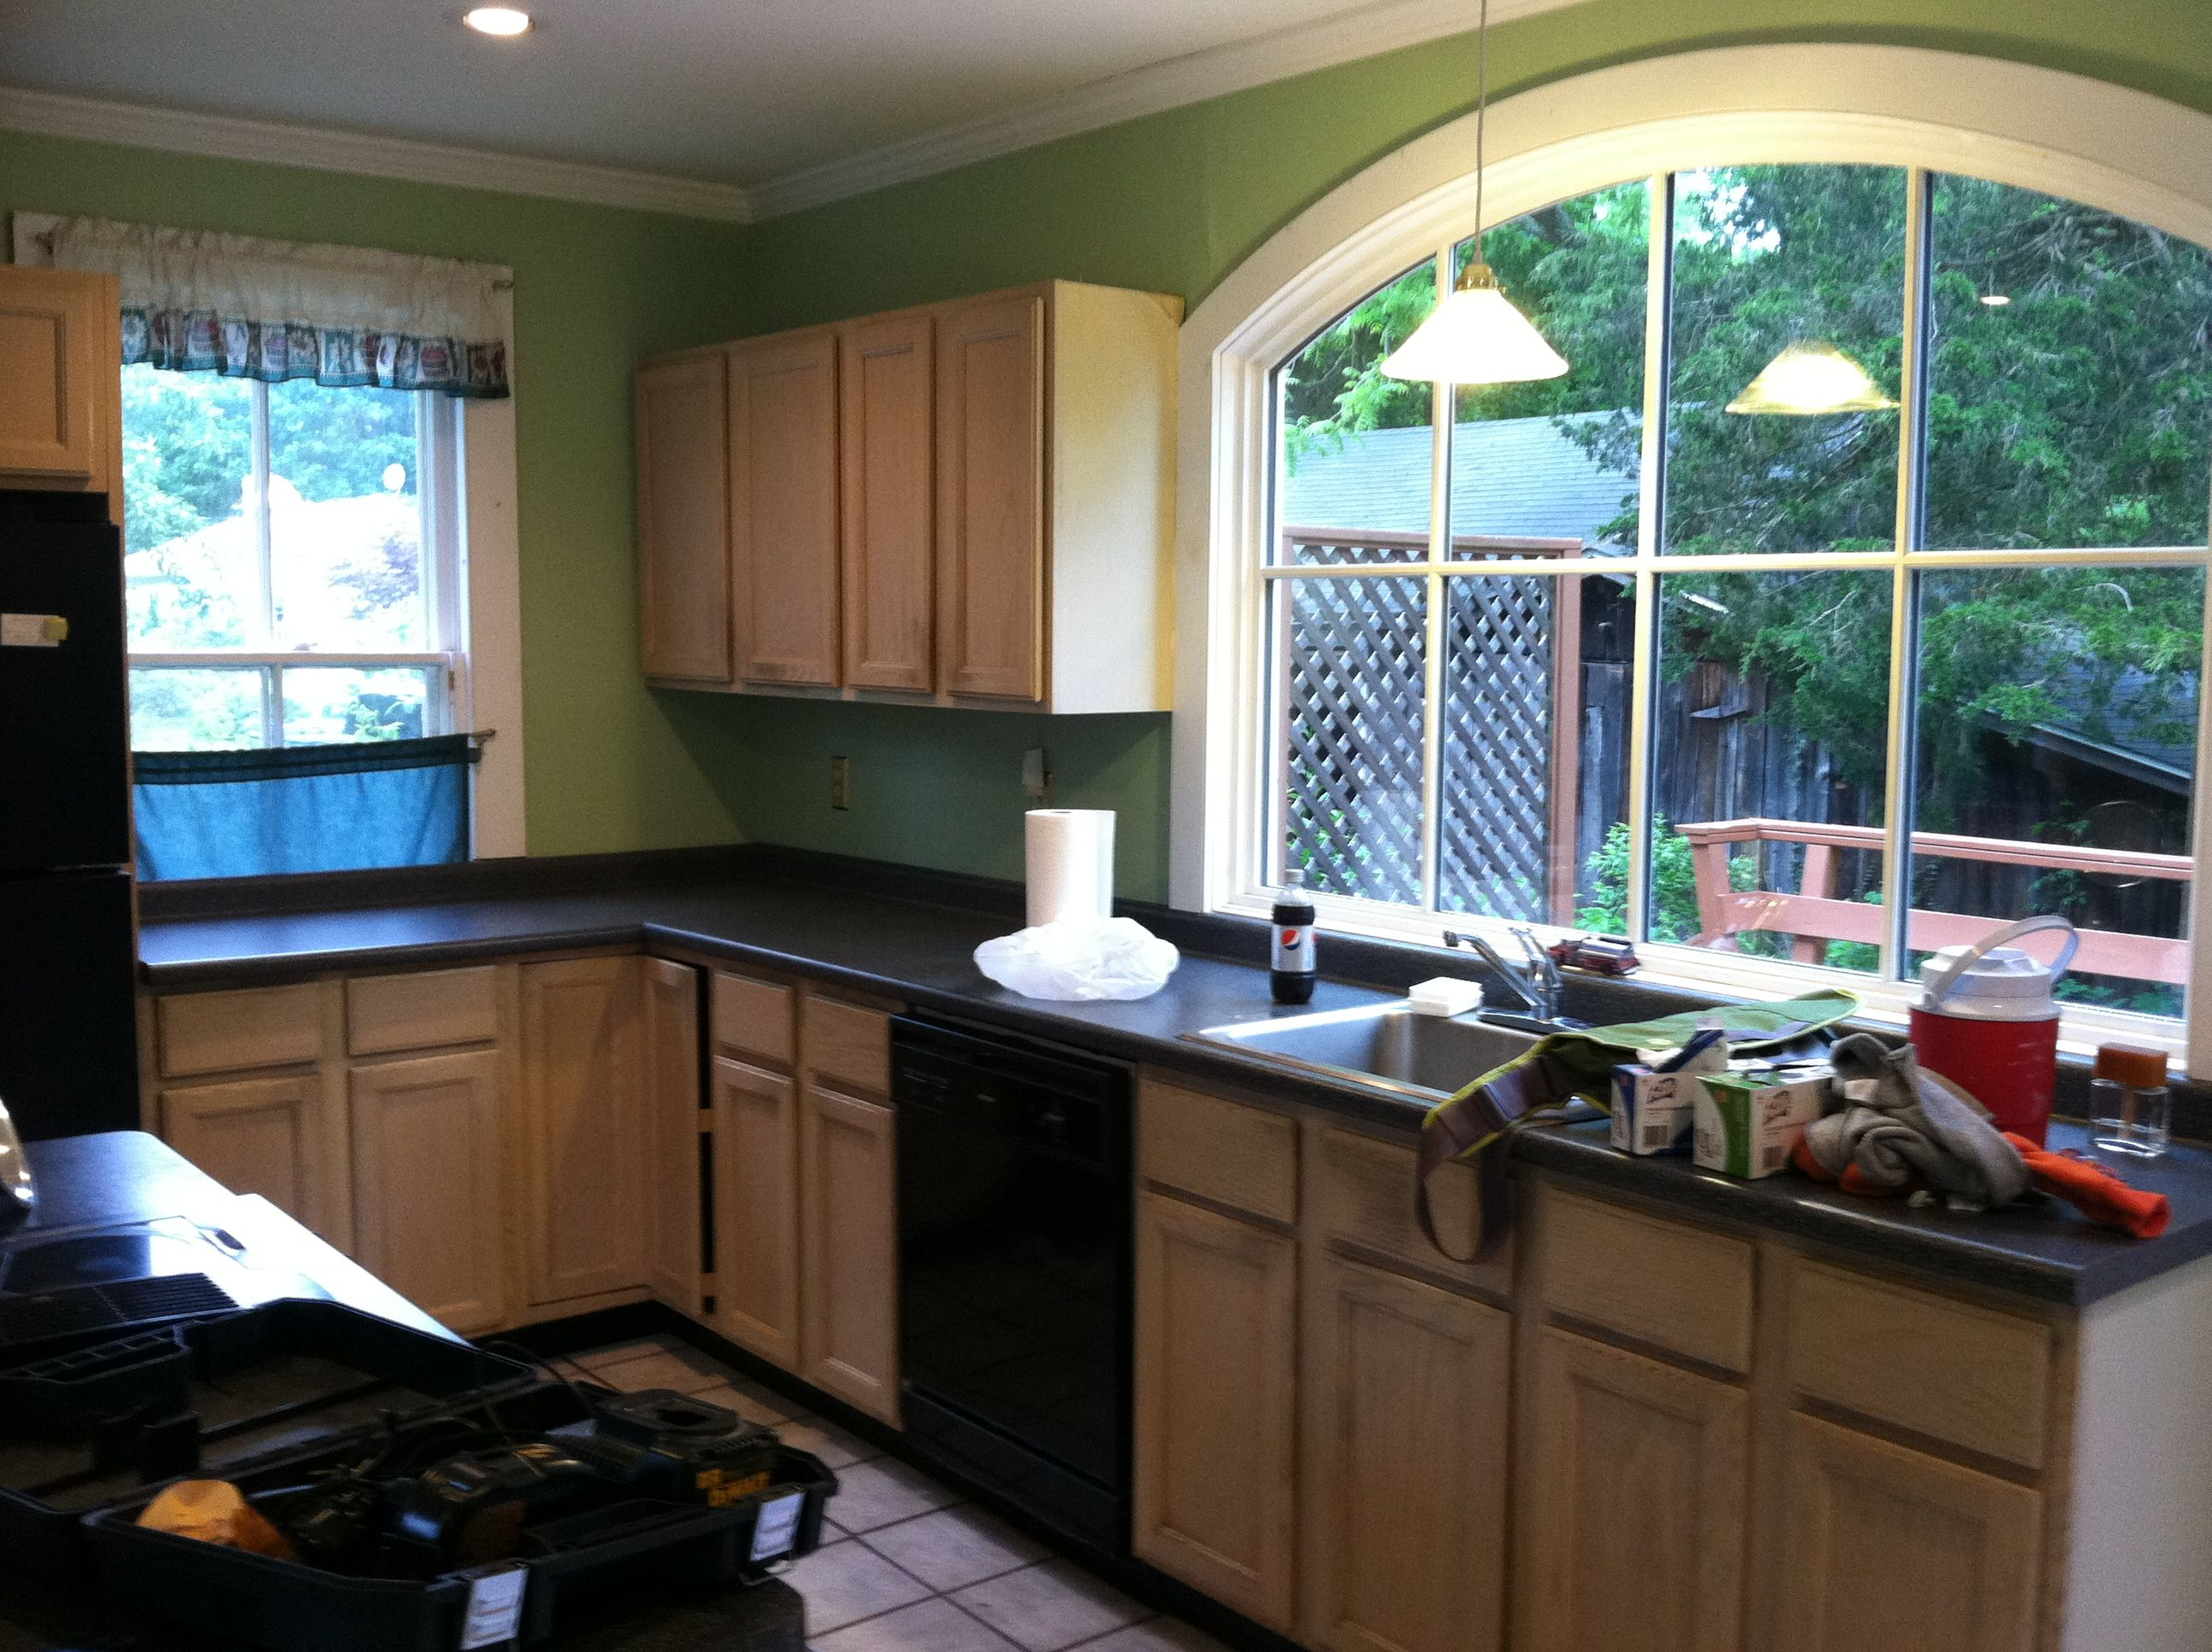 Arch Over Kitchen Sink Opening Google Search Home Kitchens Kitchen Kitchen Cabinets